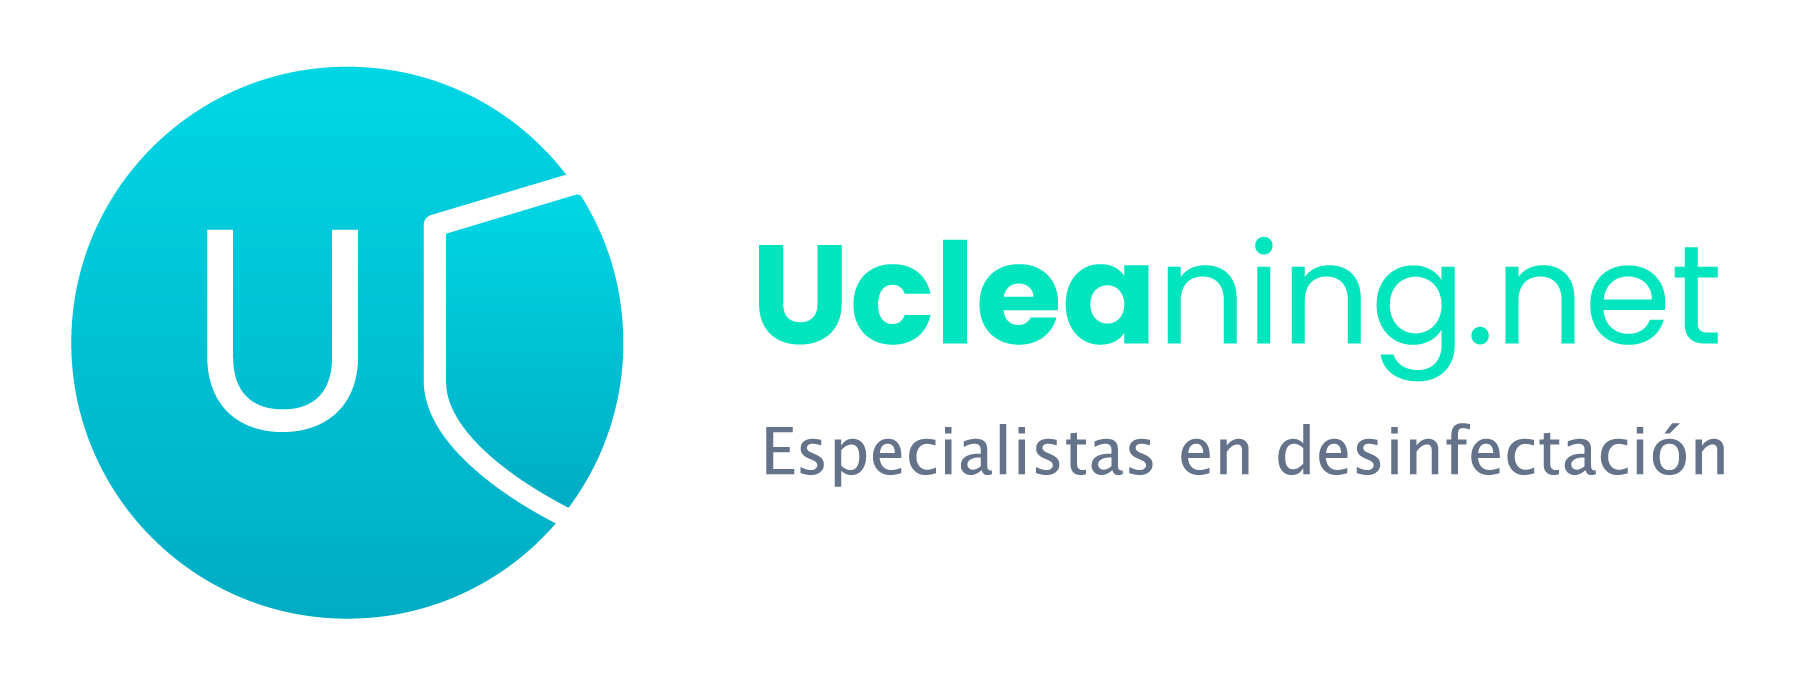 logotipo-ucleaning